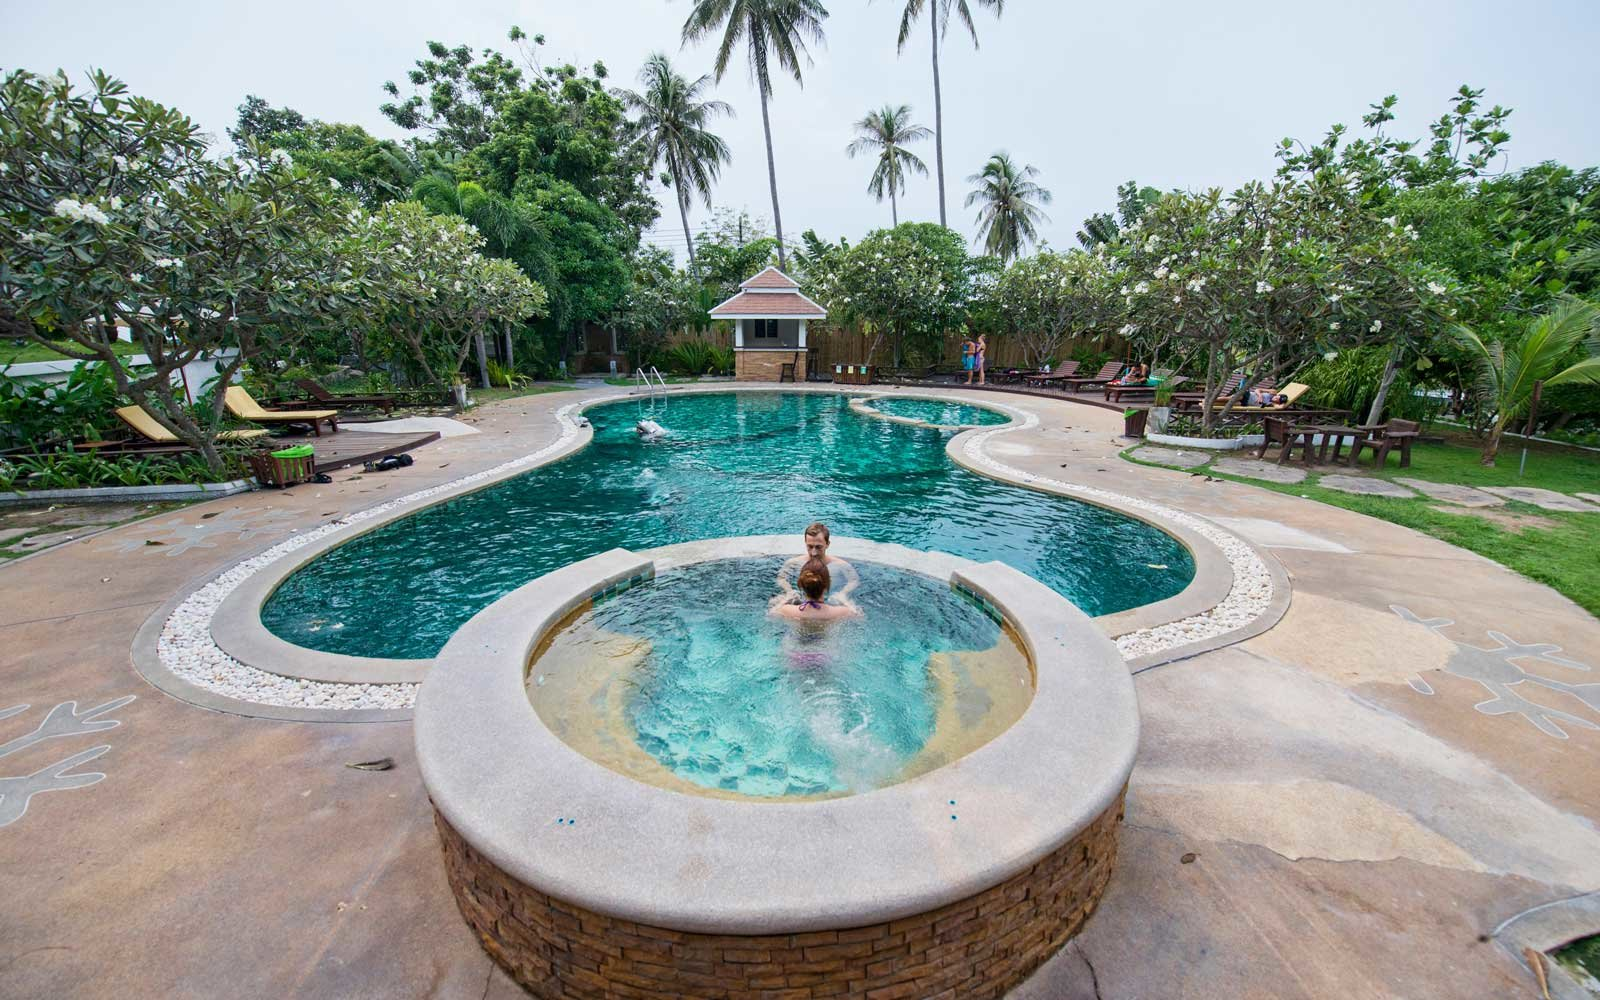 The pool at Ban's Diving Resort, in Thailand